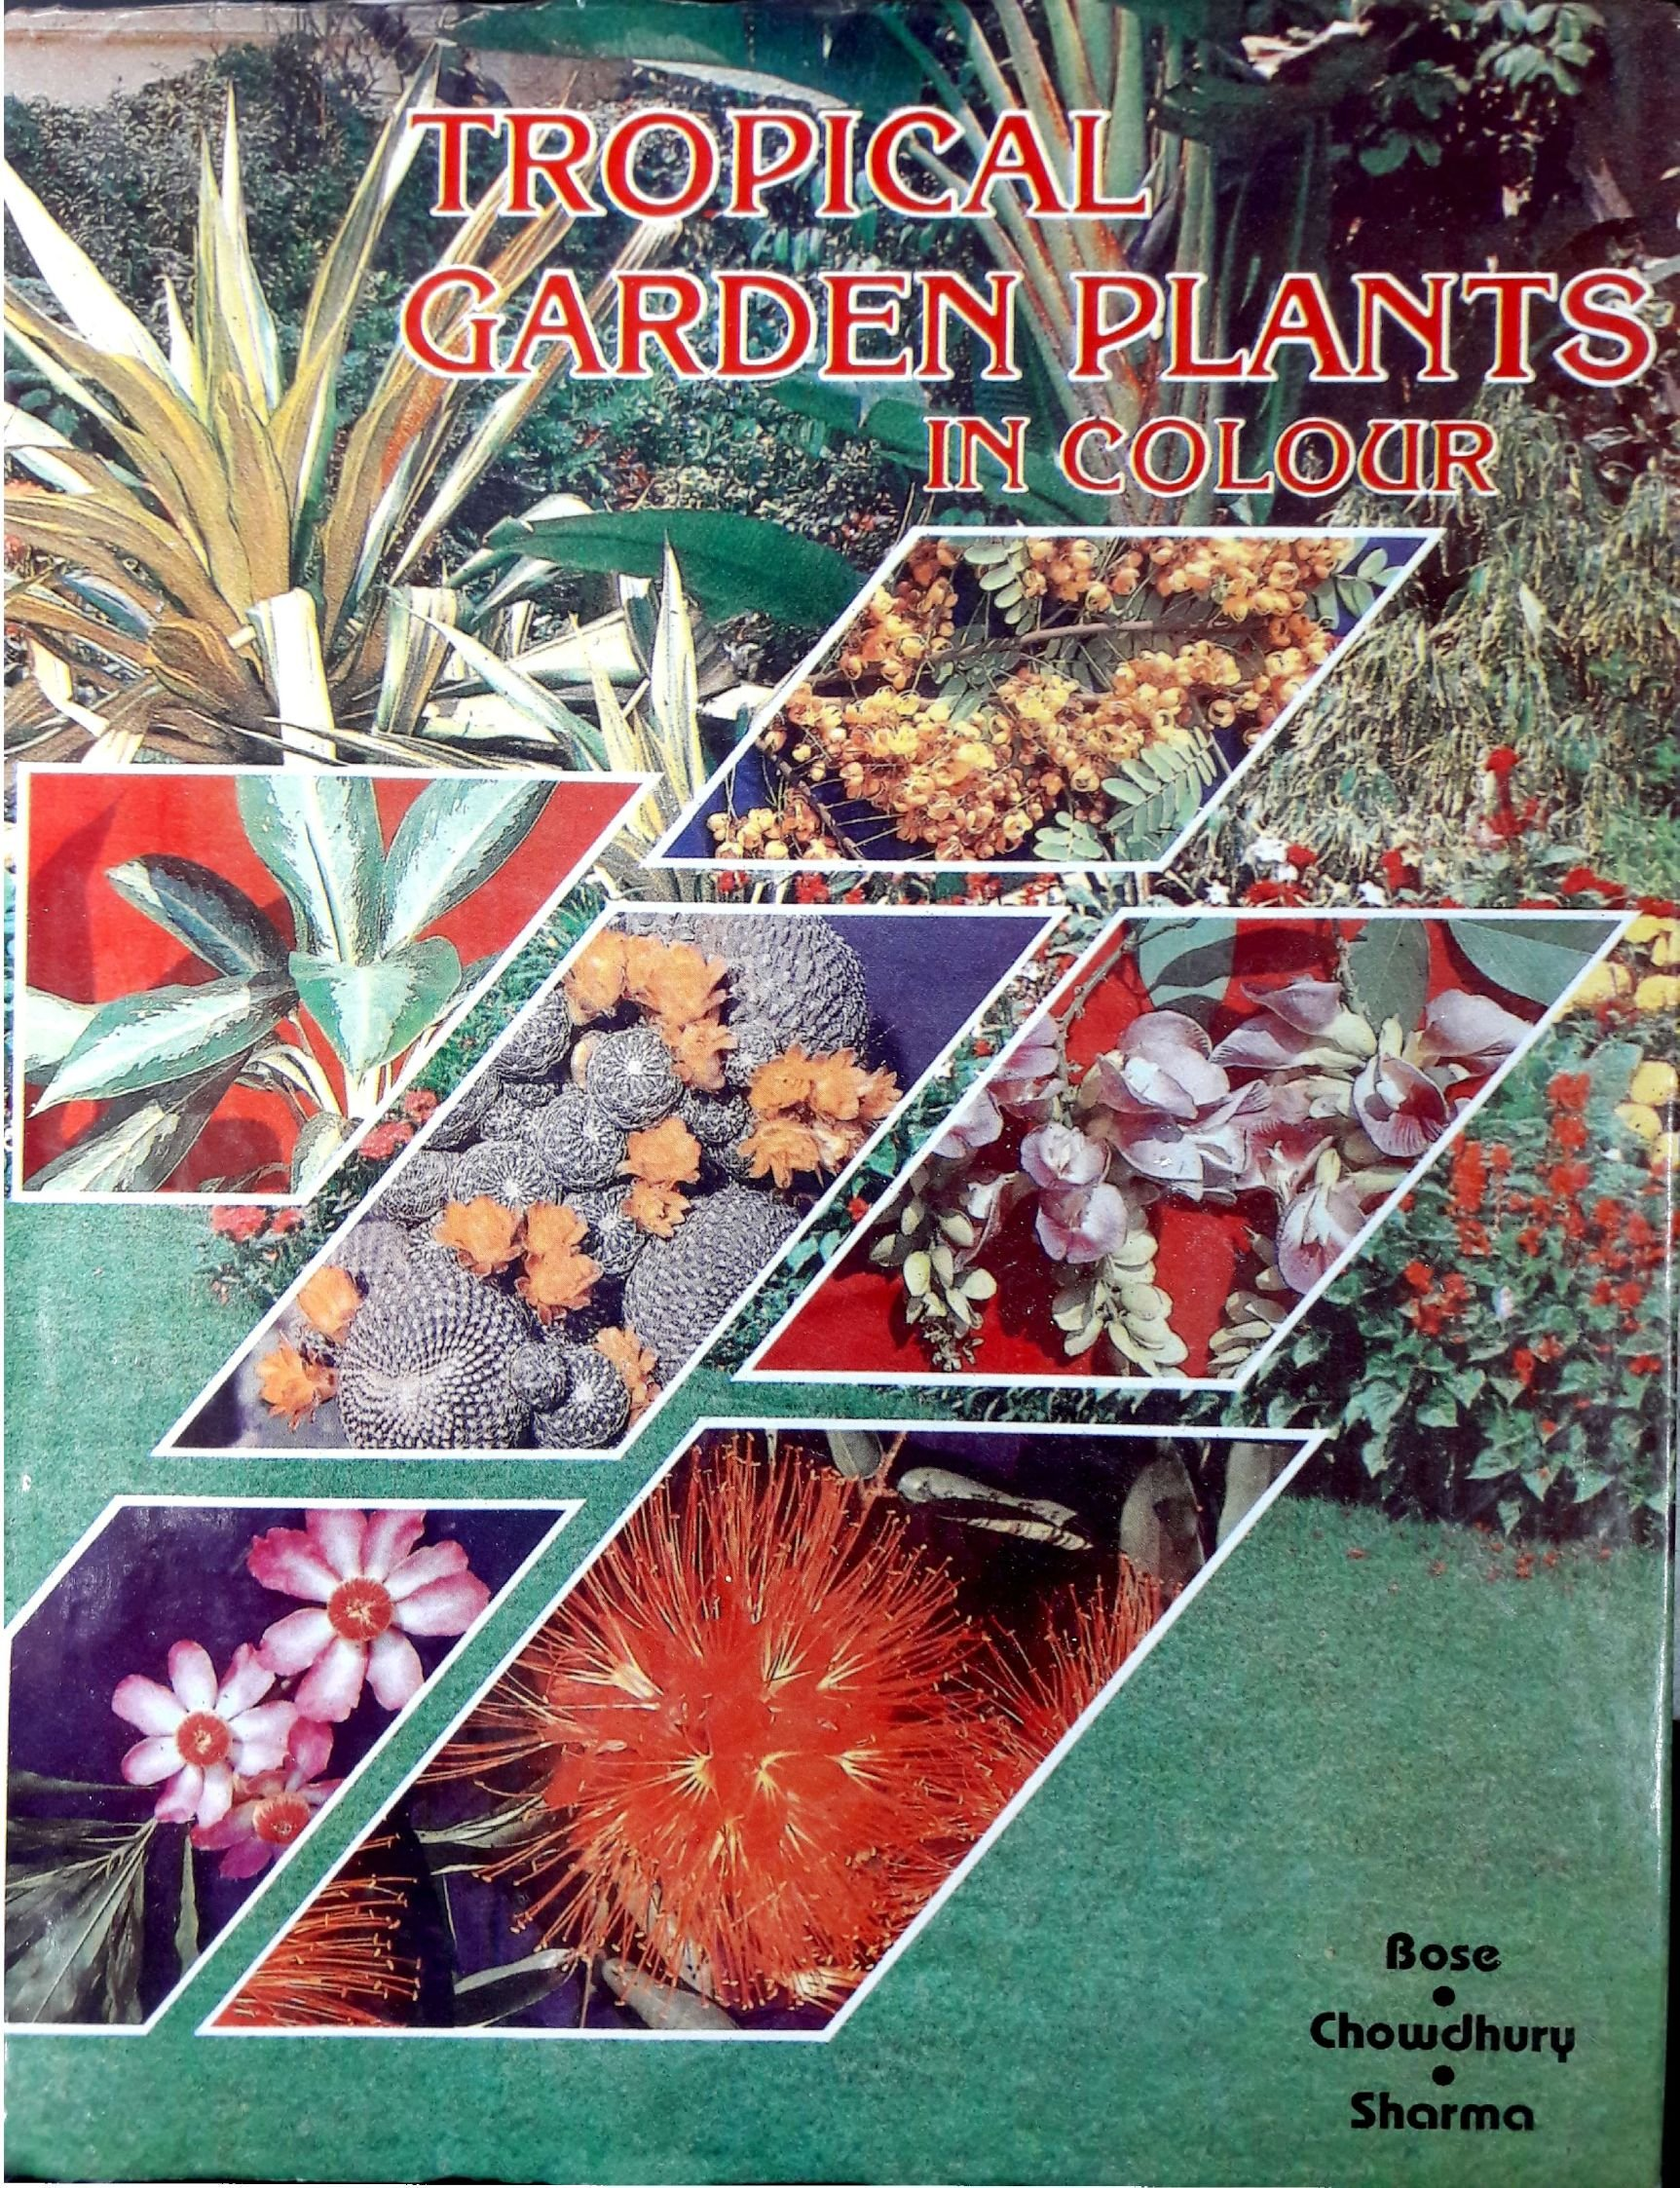 Amazonin Buy Tropical Garden Plants In Colour Book Online At Low Prices India